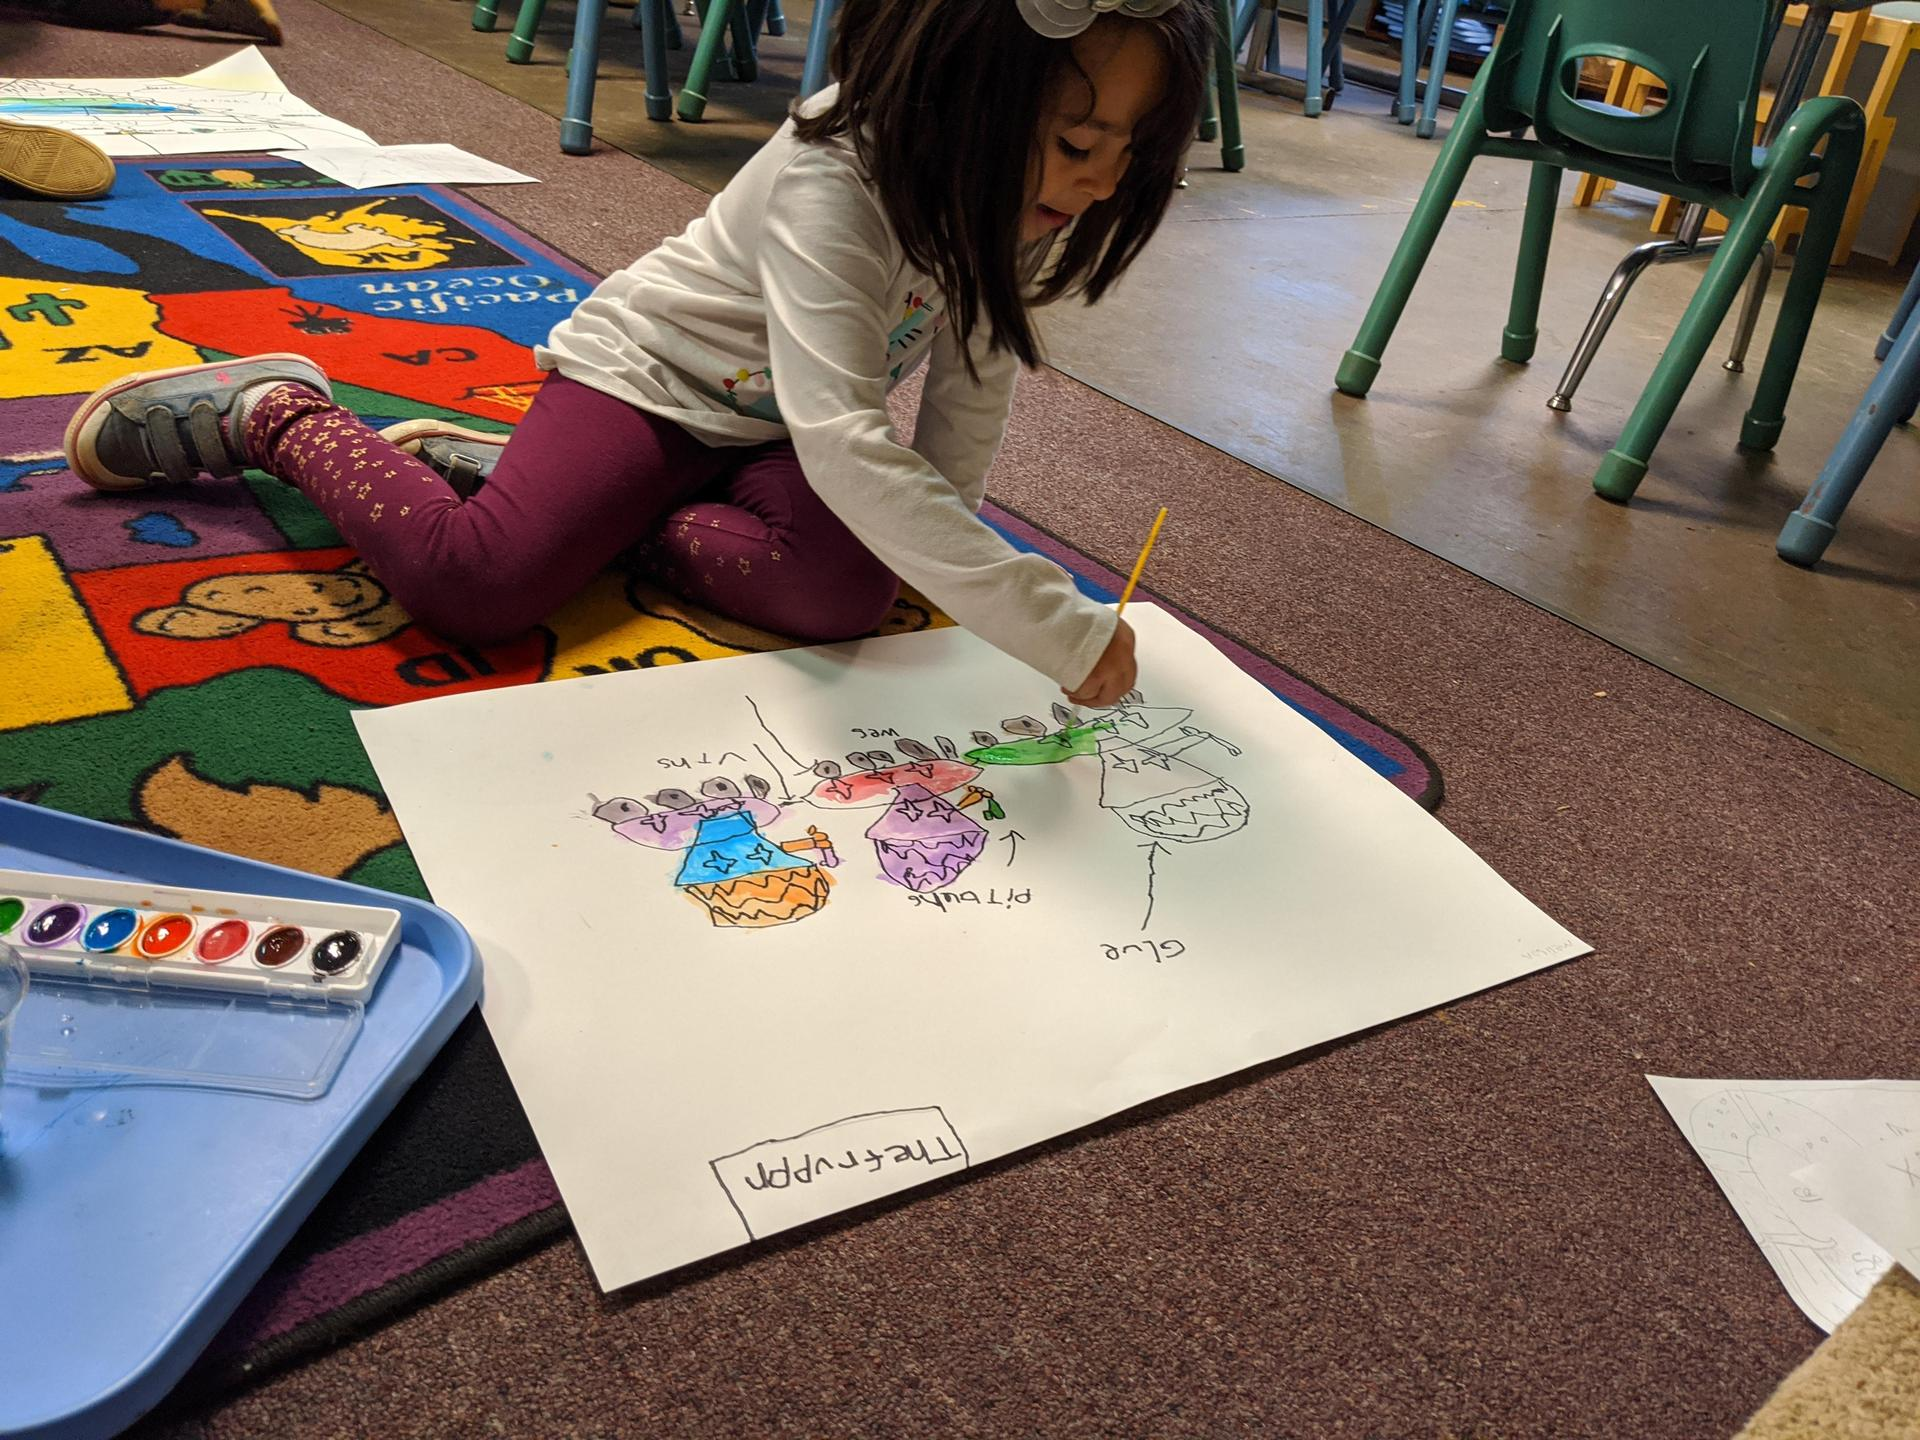 A student sits on the floor and colors.